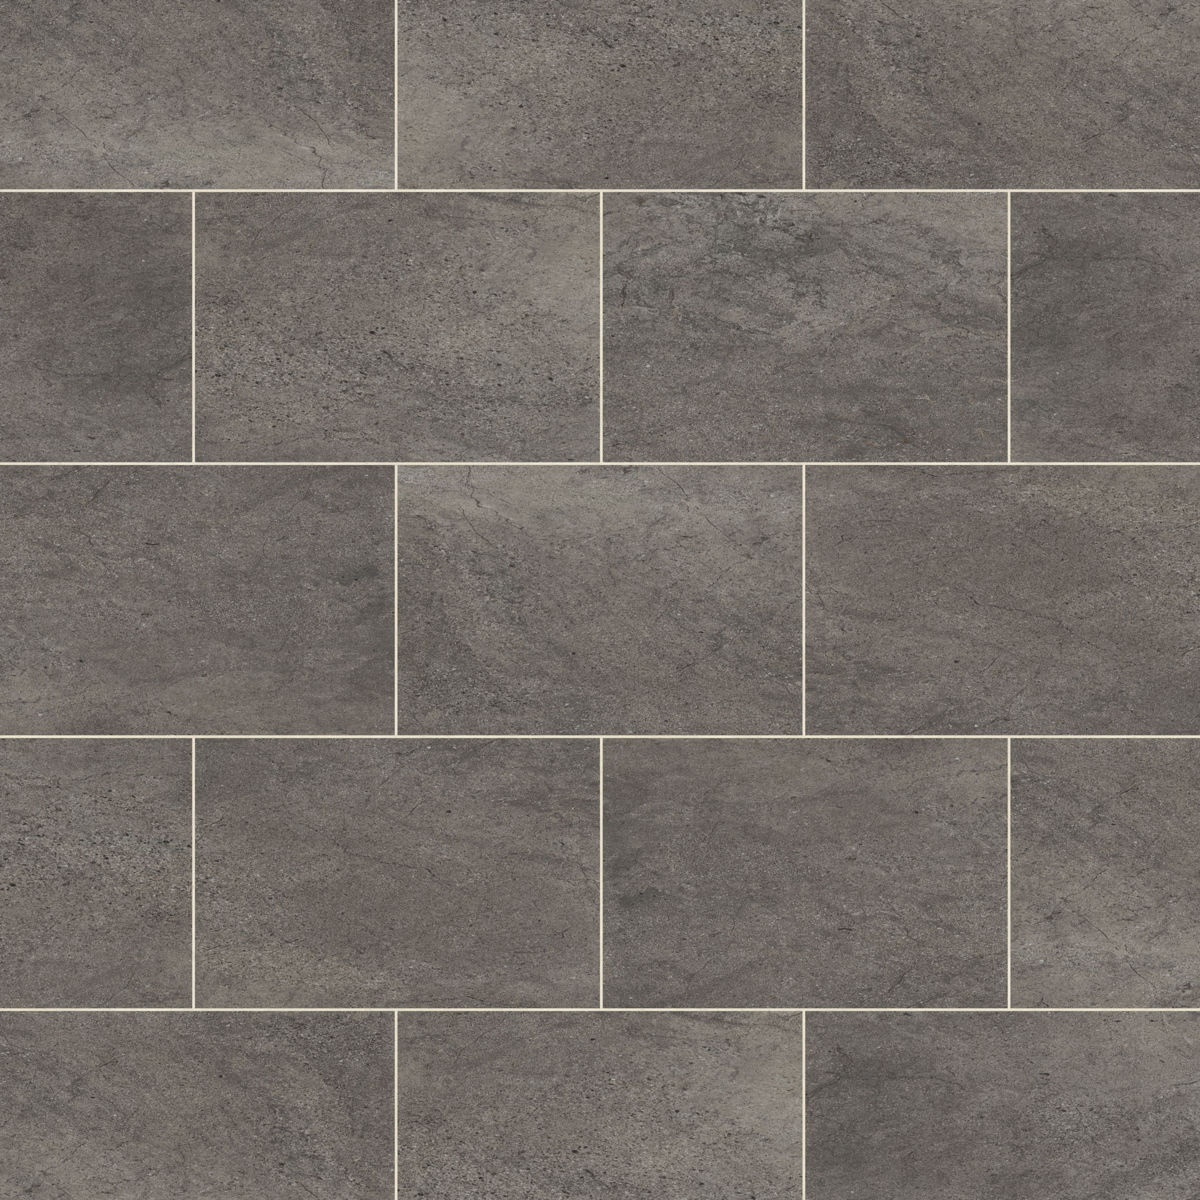 karndean knight tile cumbrian stone st14 vinyl flooring. Black Bedroom Furniture Sets. Home Design Ideas